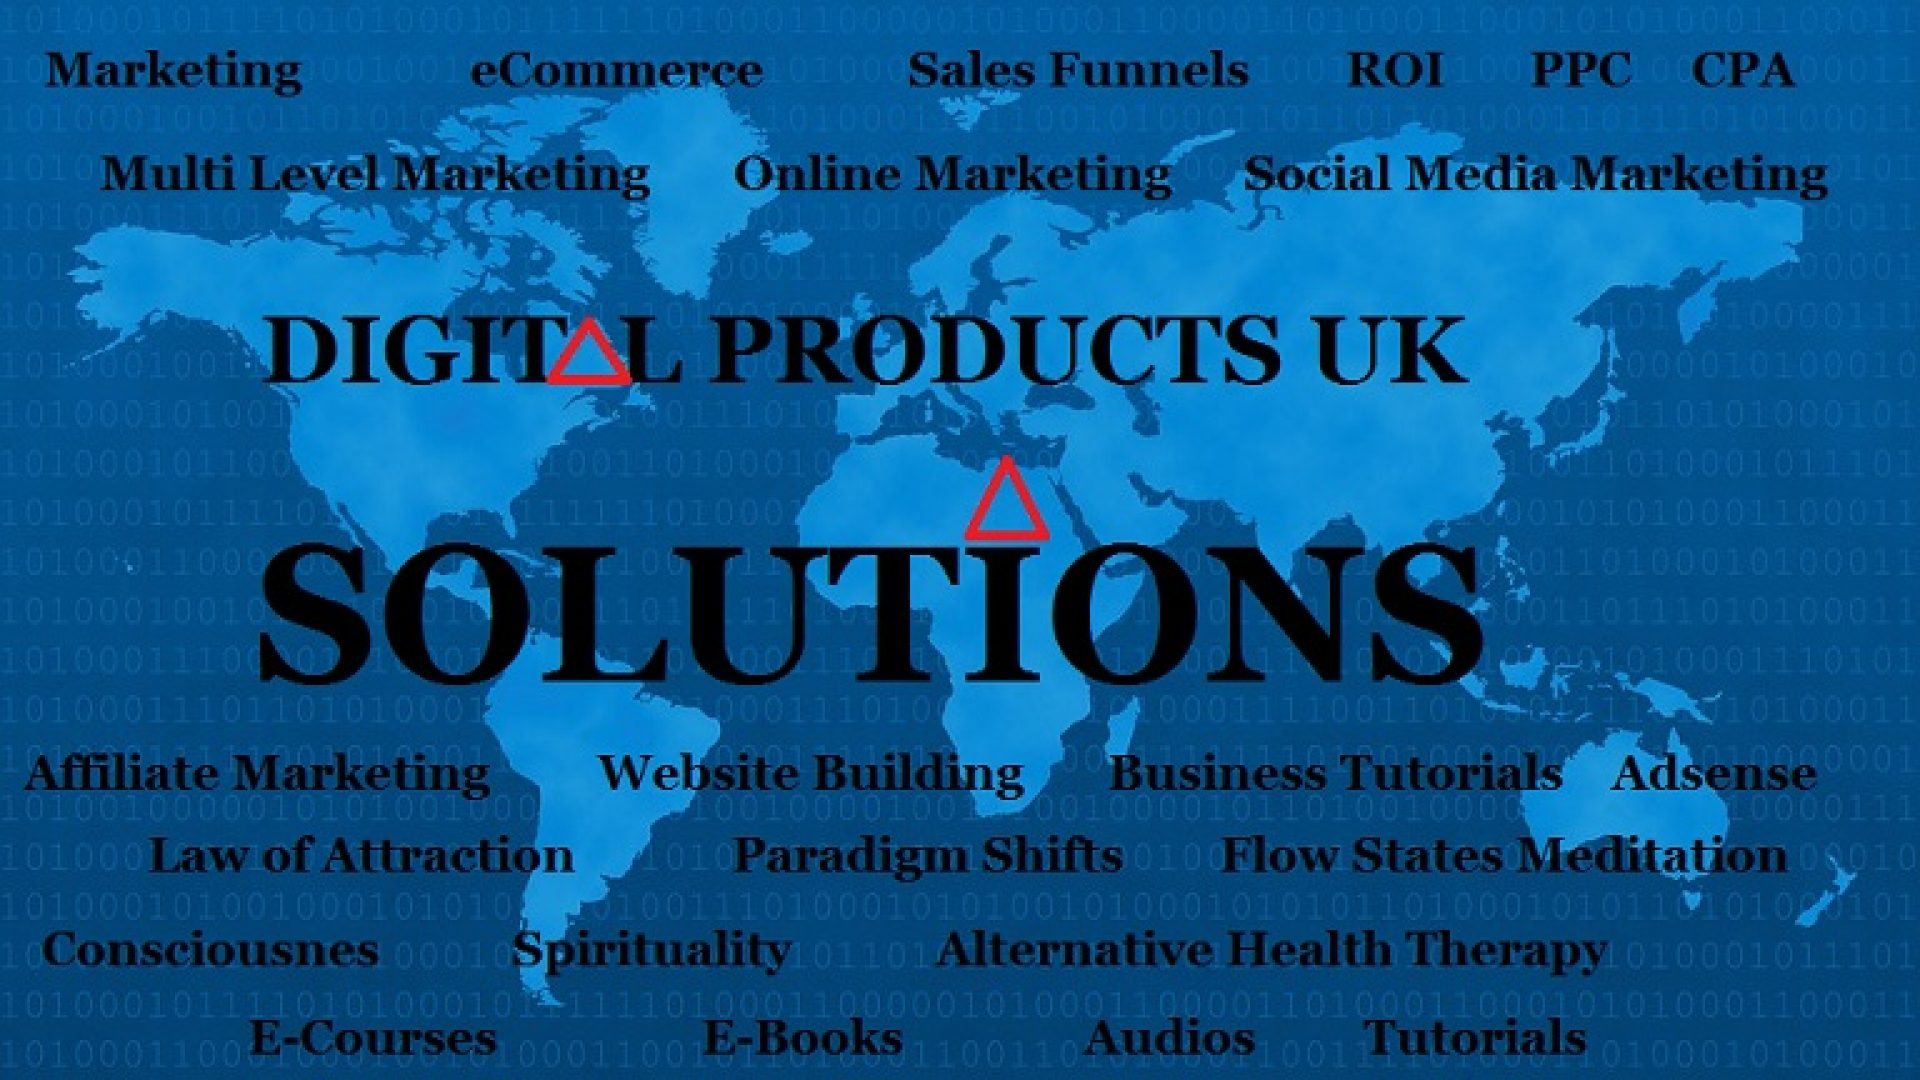 Digital Products UK